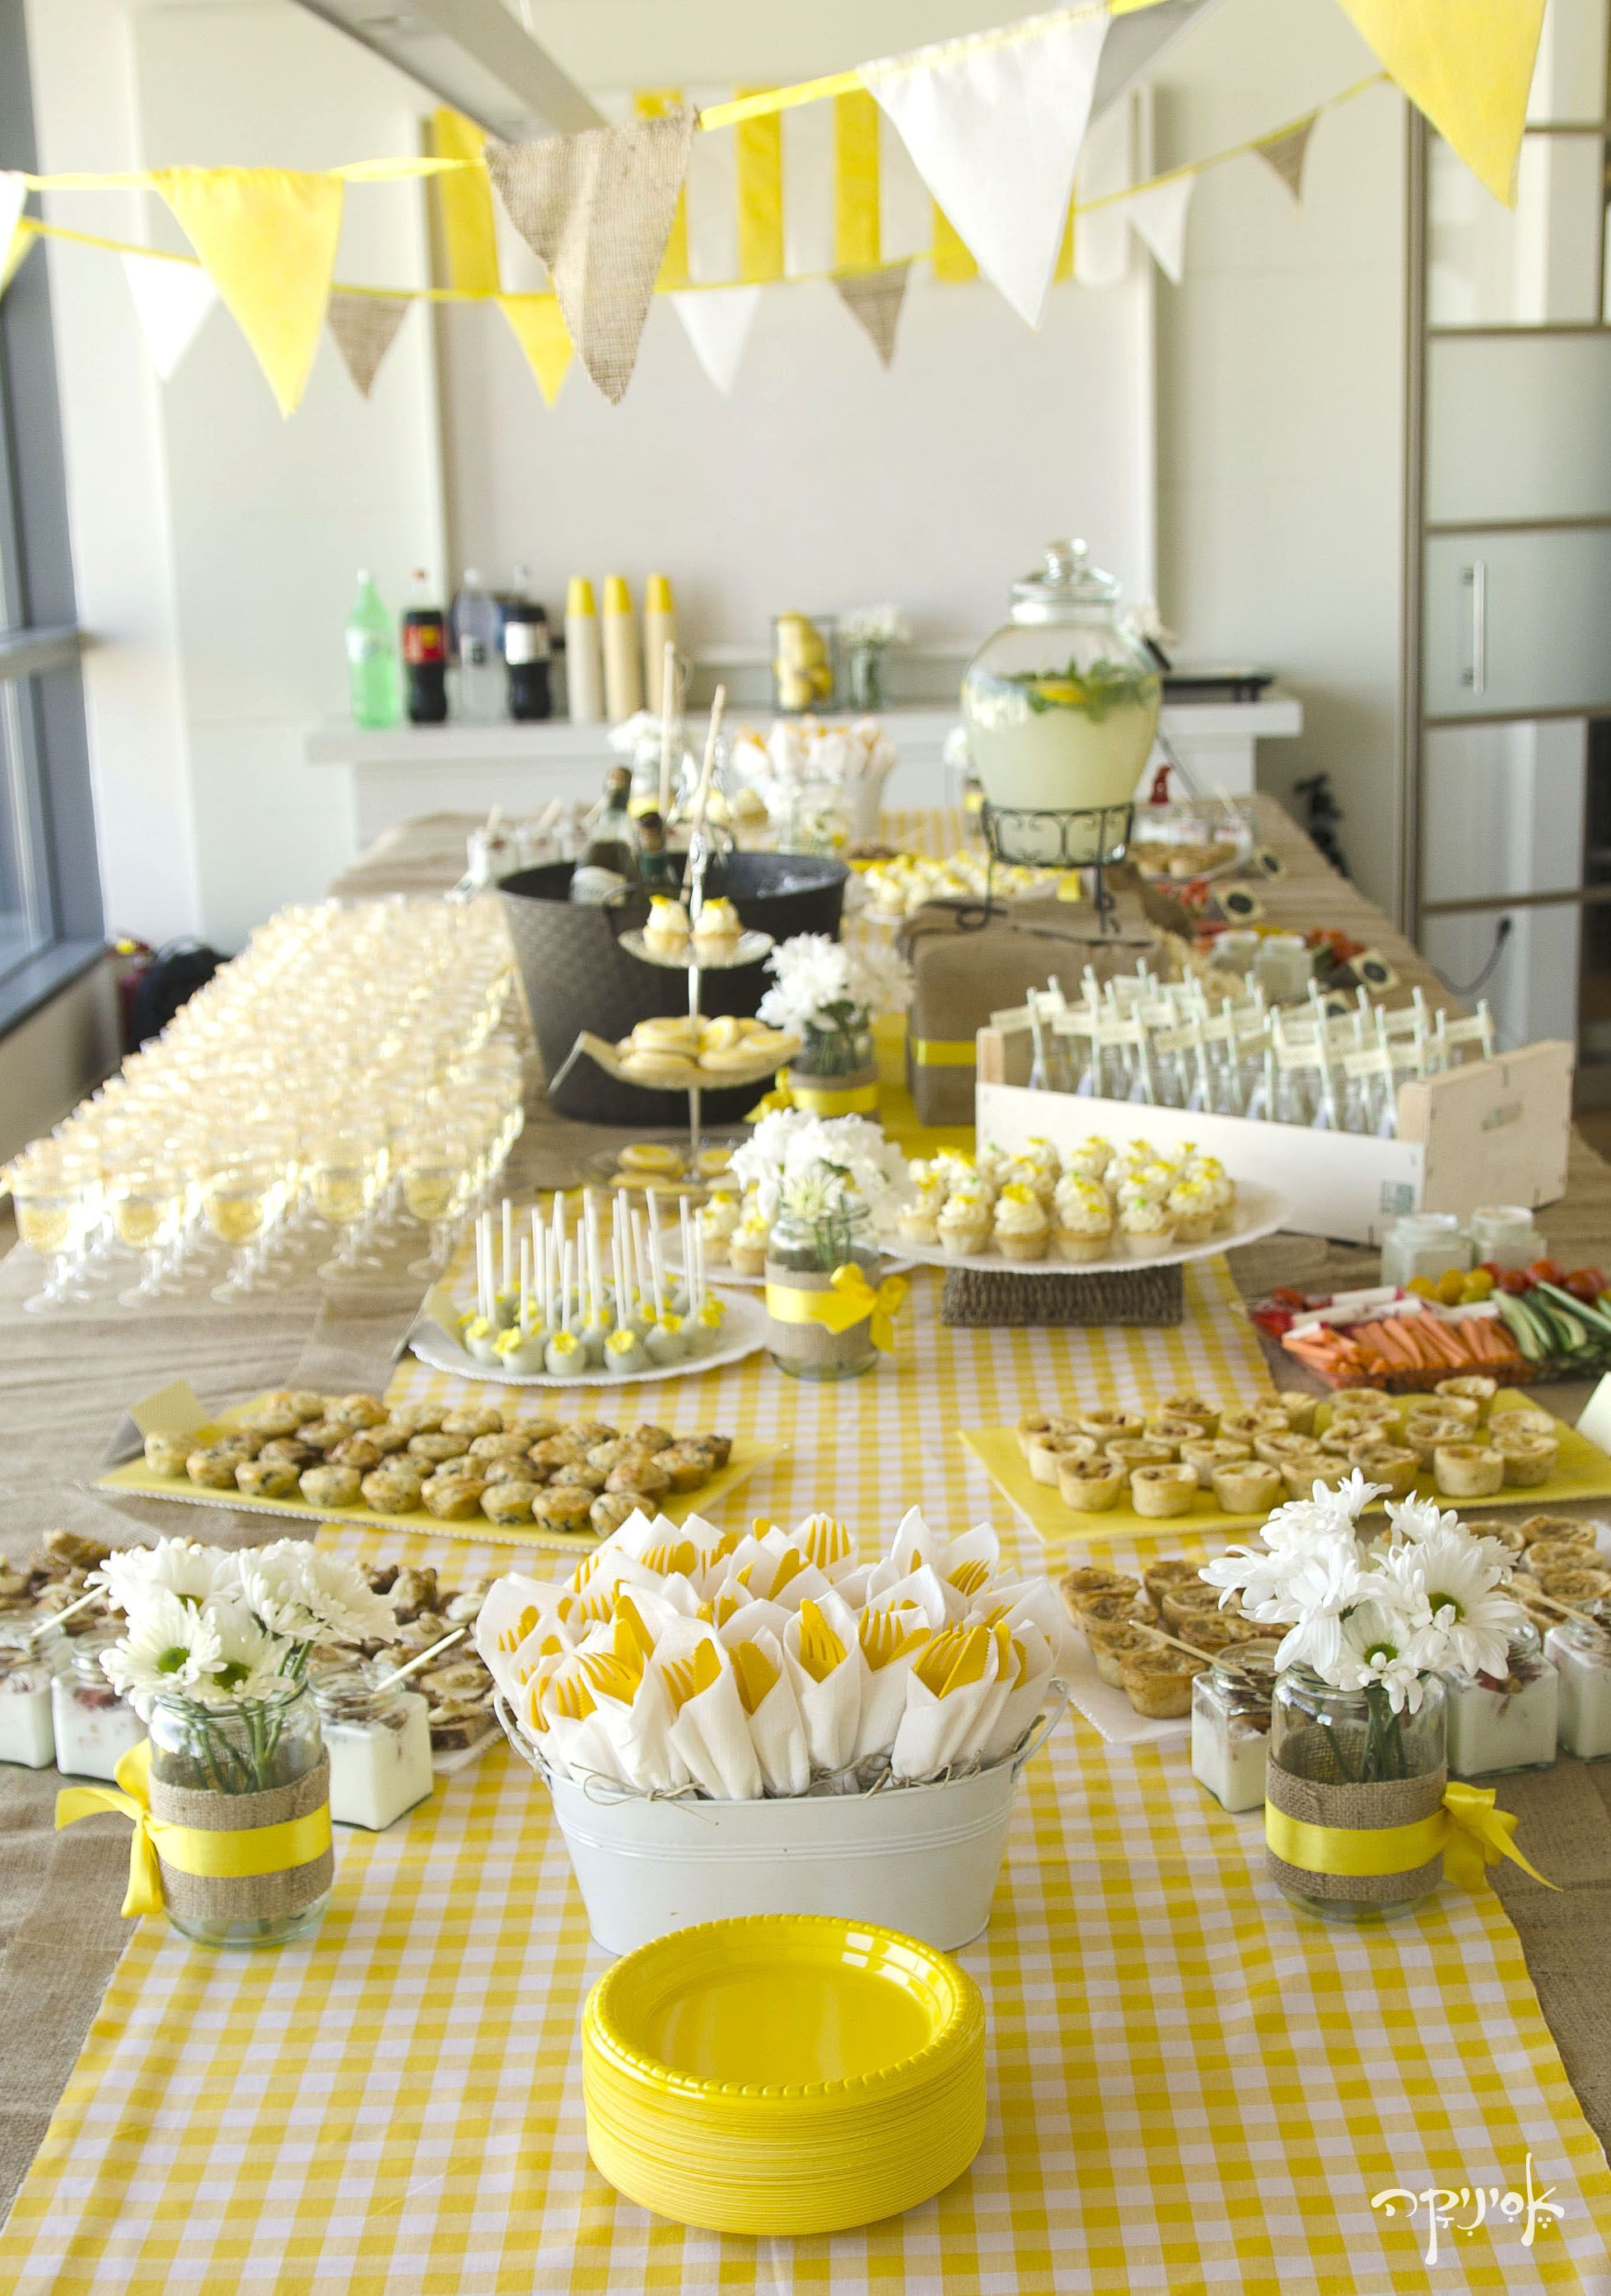 Festive Yellow Spread With Bows Ribbons Bunting And White Flowers